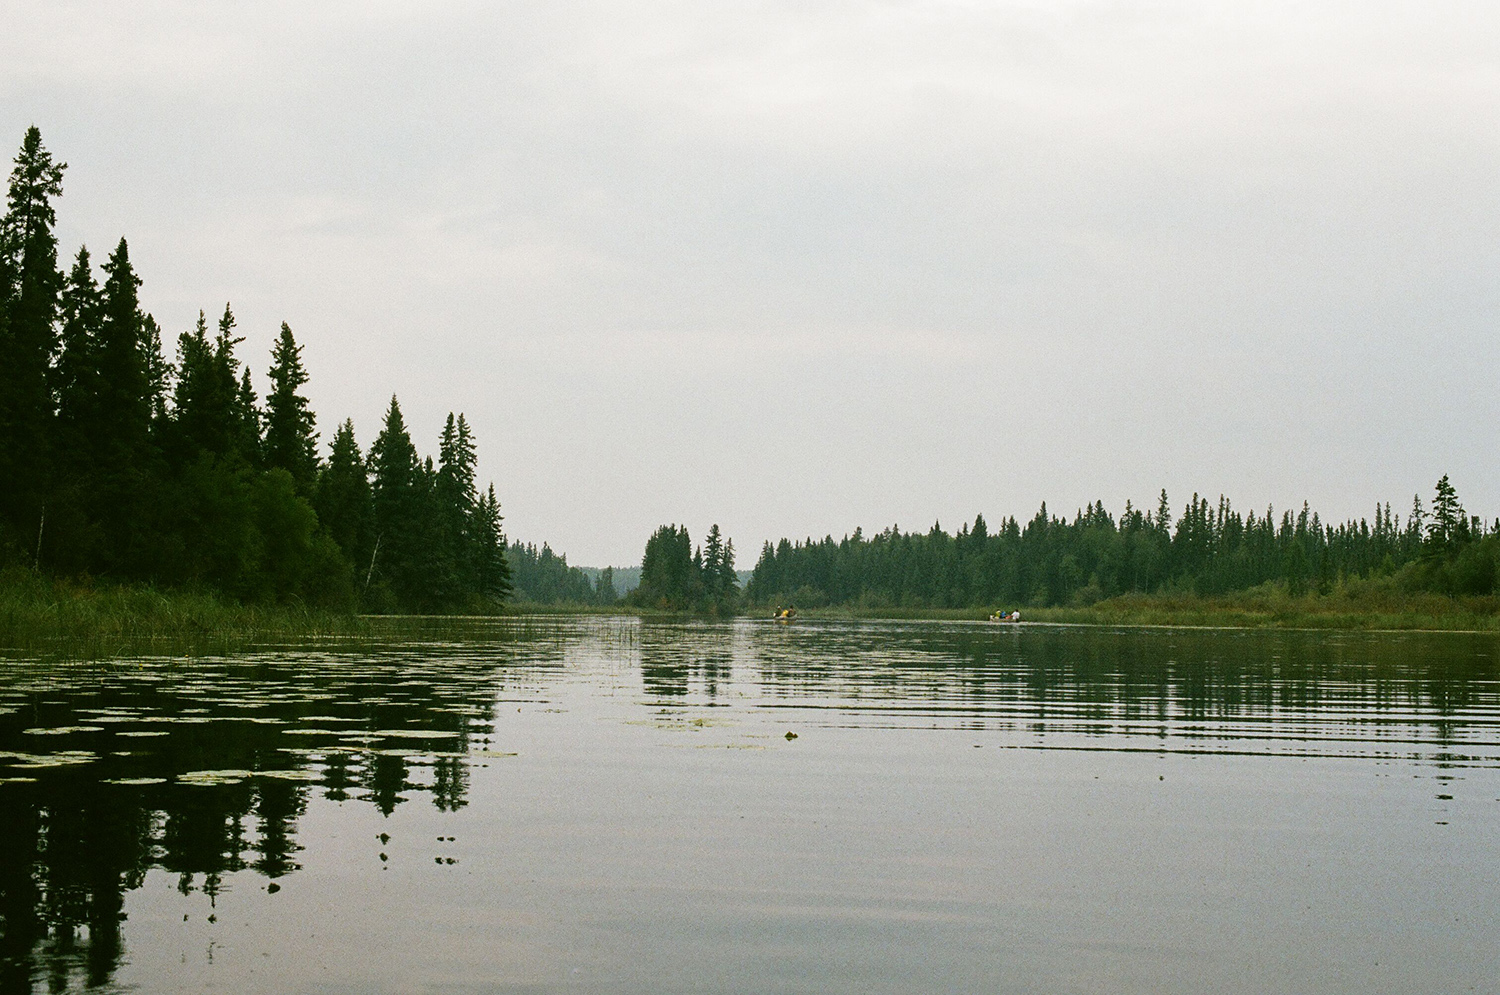 Paddling through a calm channel (Hootz)